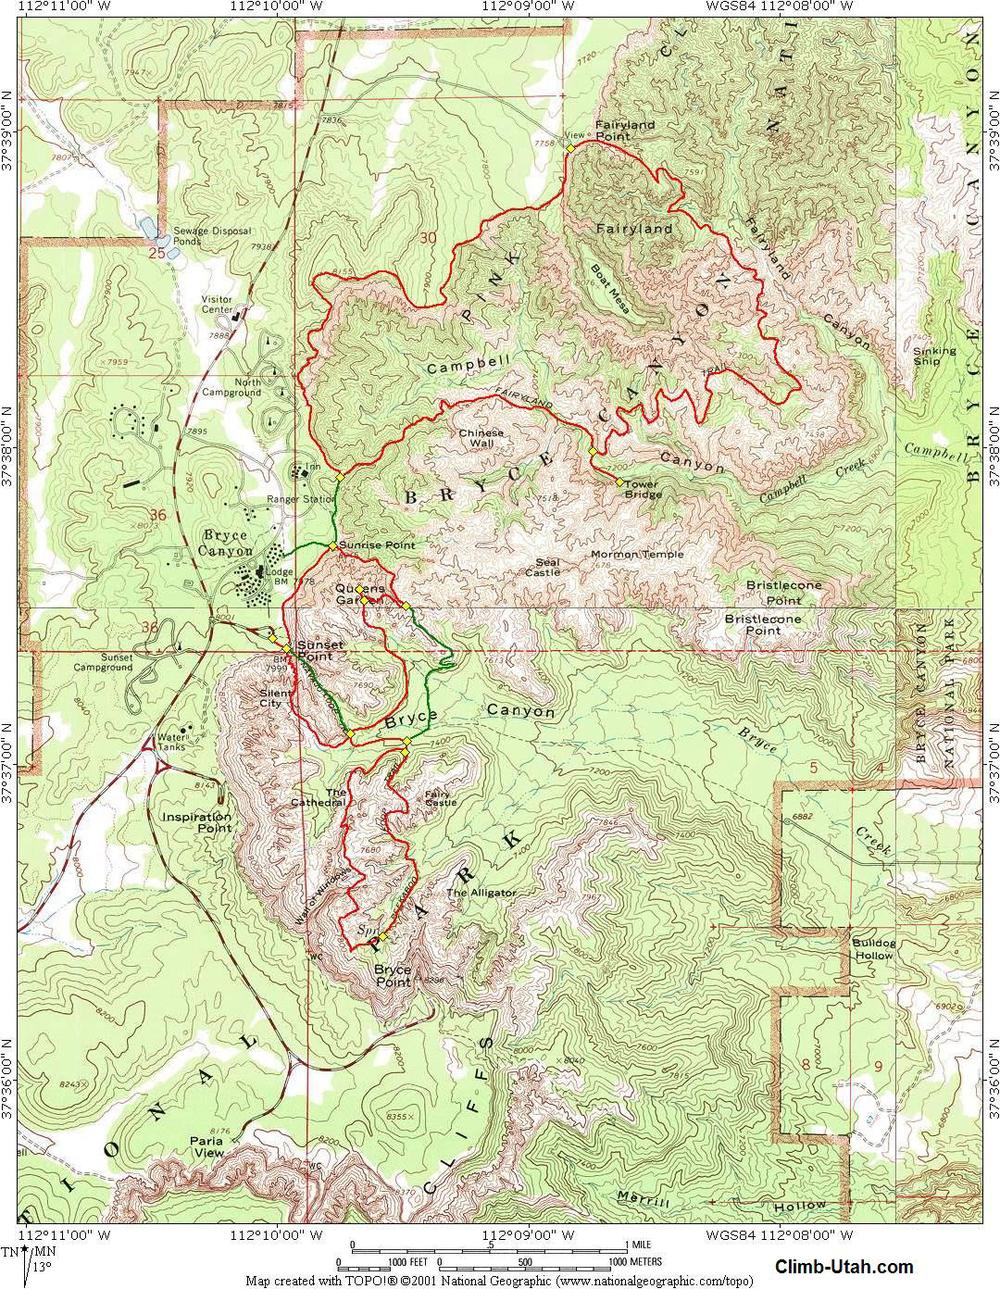 Trail map from climb-utah.com